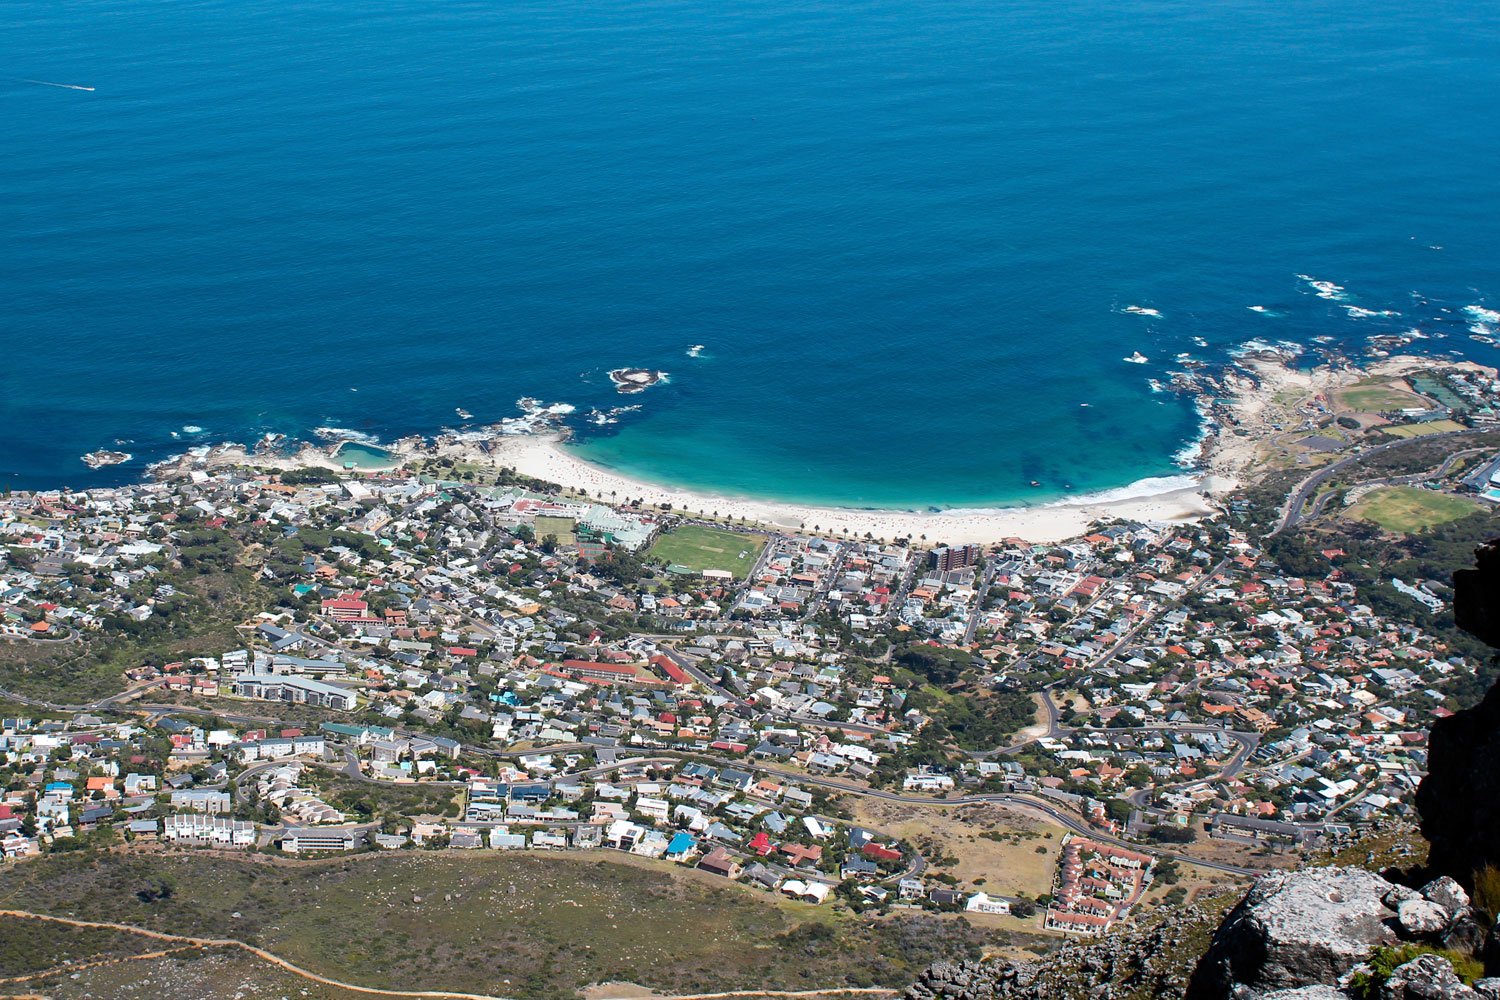 Camps Bay from the top of Table Mountain